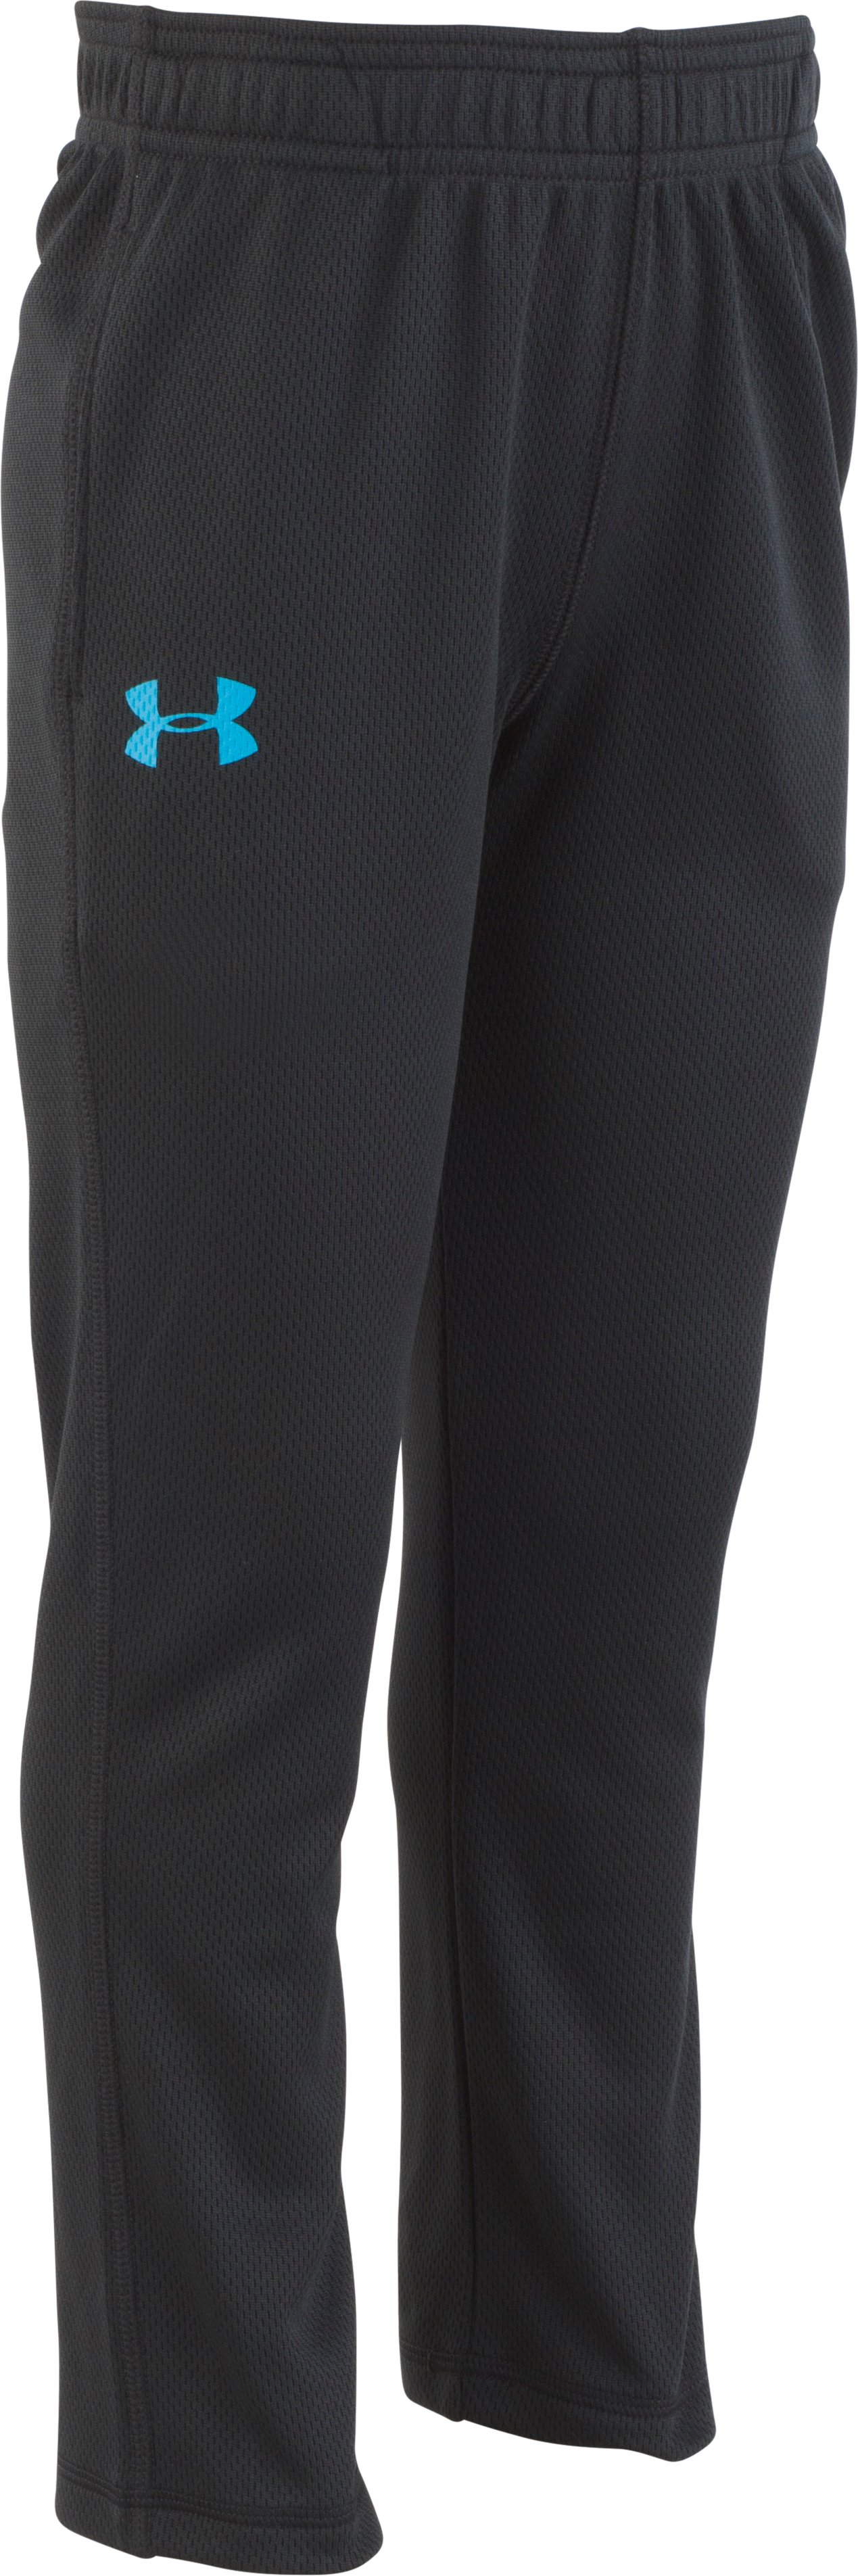 Boys' Toddler UA Brute Pants, Black , zoomed